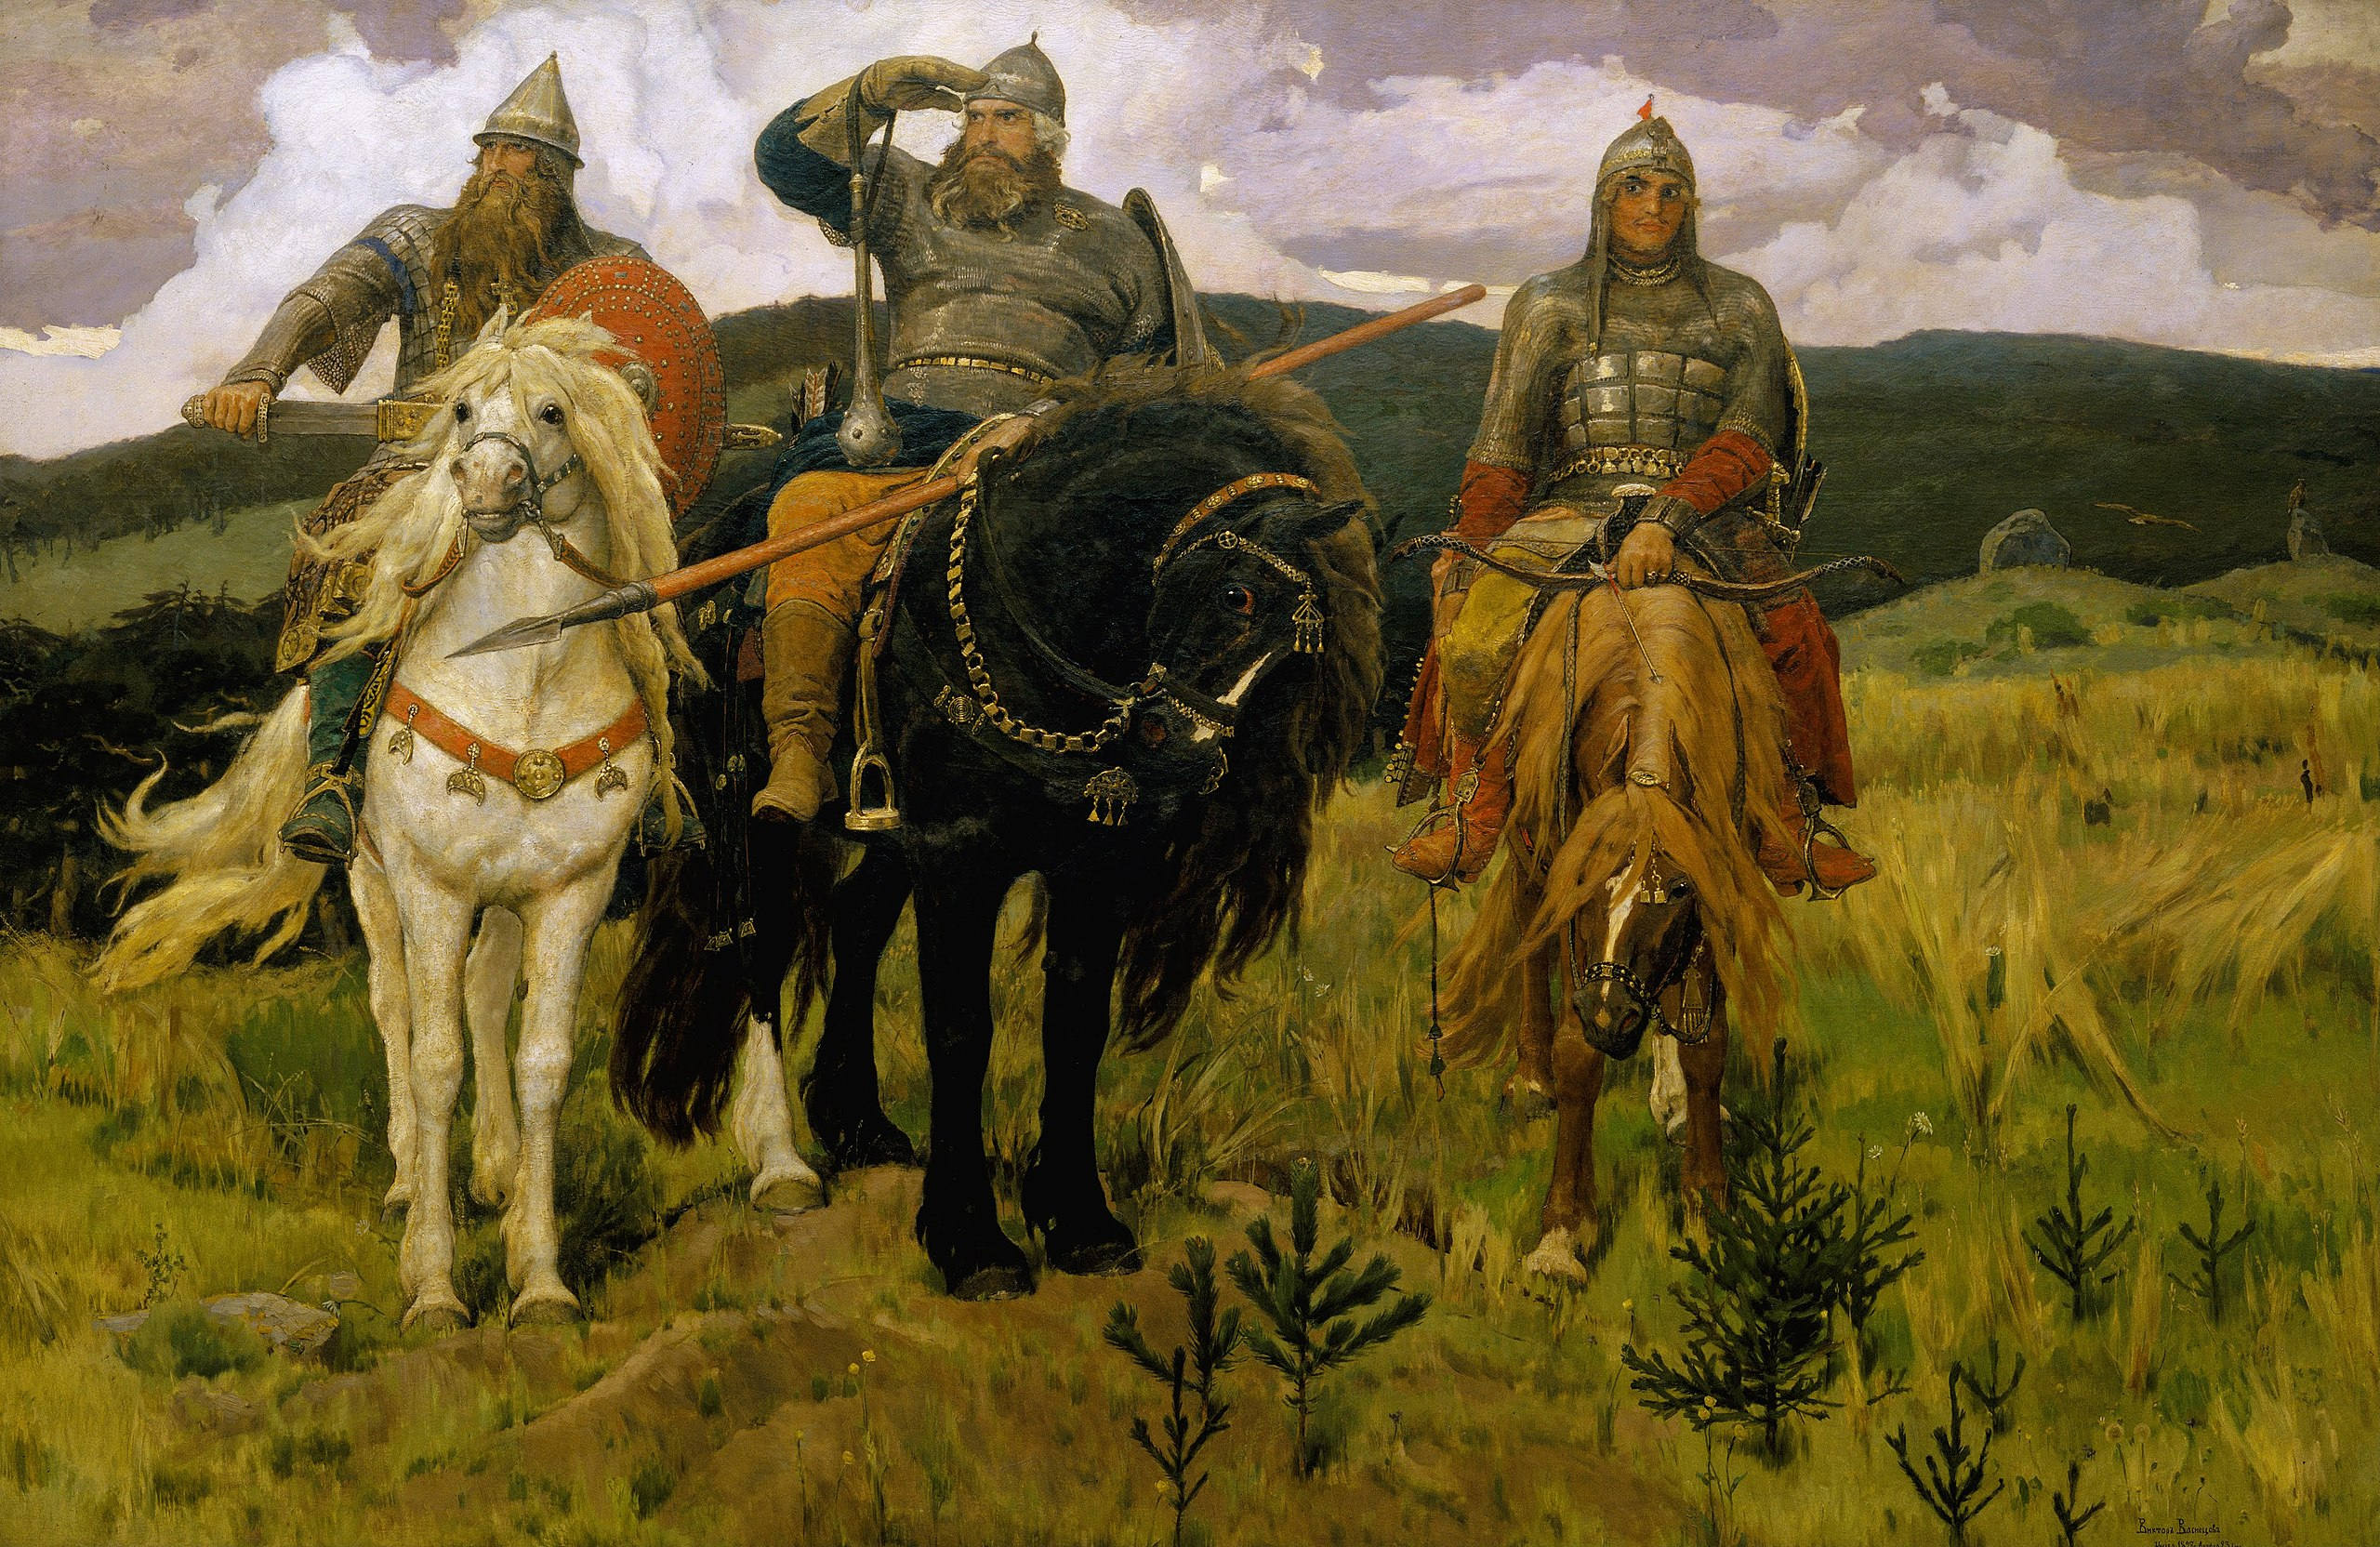 2560px-Viktor_Vasnetsov_-_Богатыри_-_Google_Art_Project-1.jpg